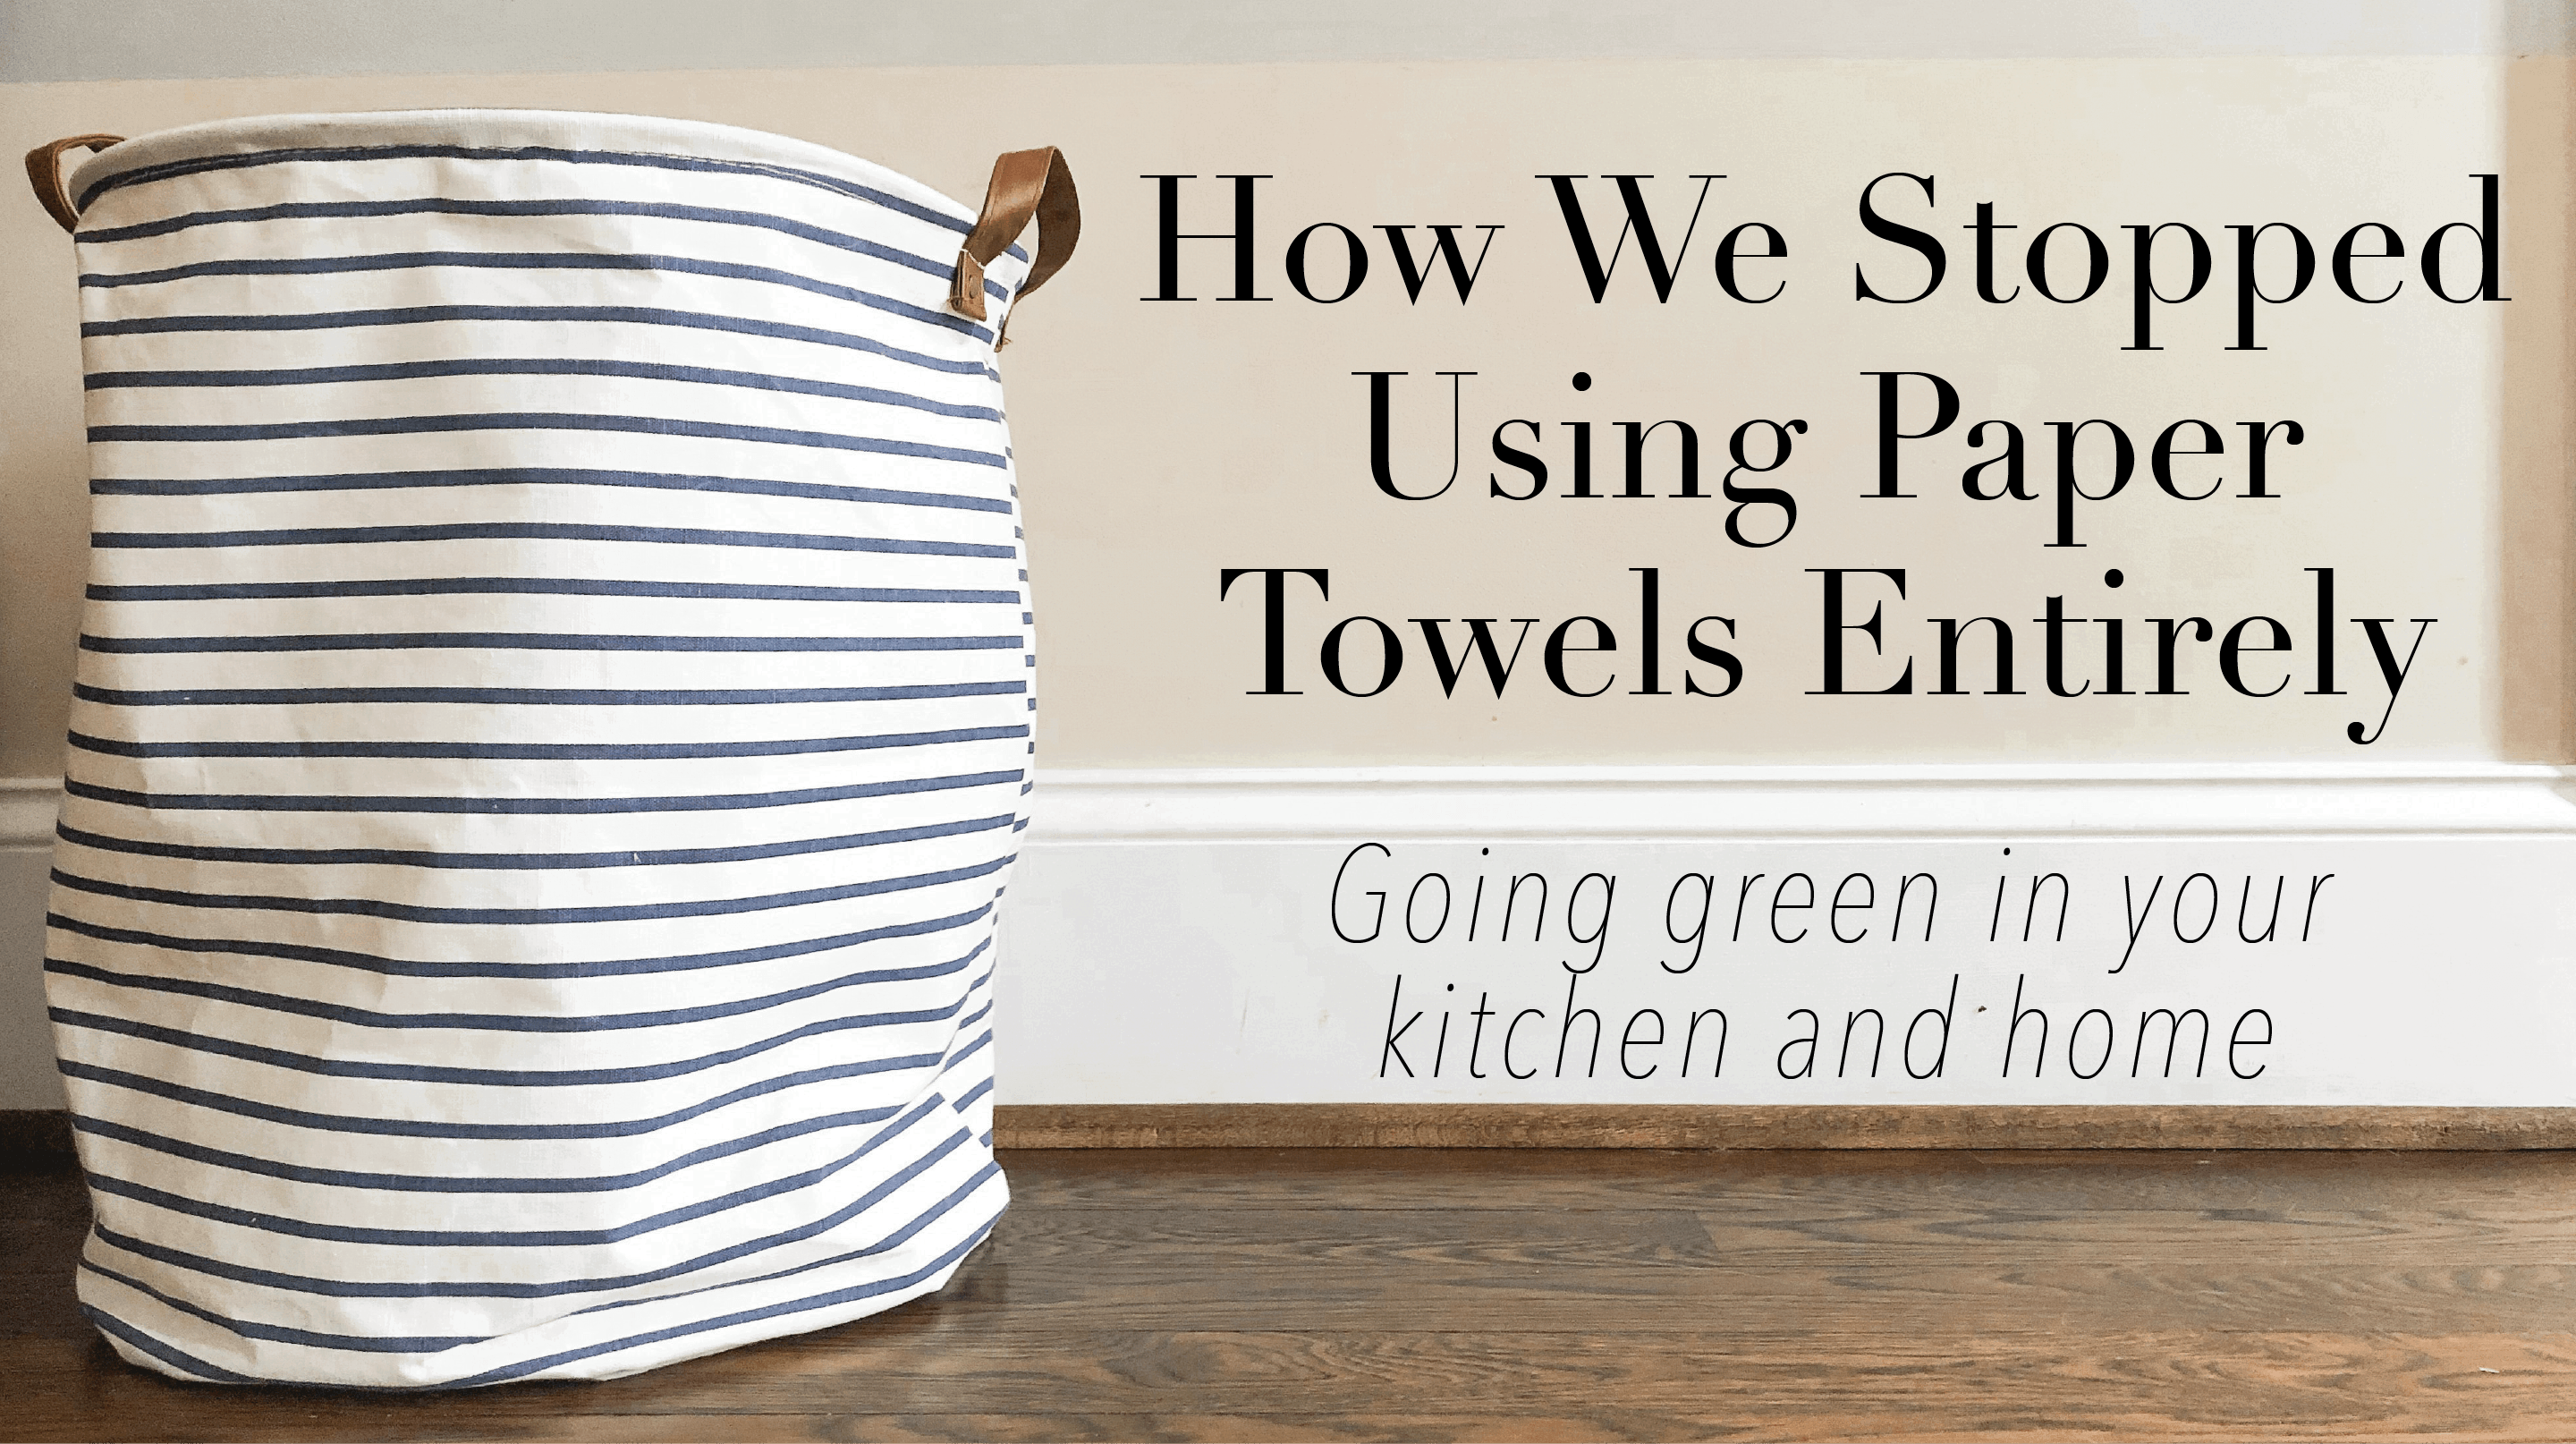 How To Stop Using Paper Towels Entirely